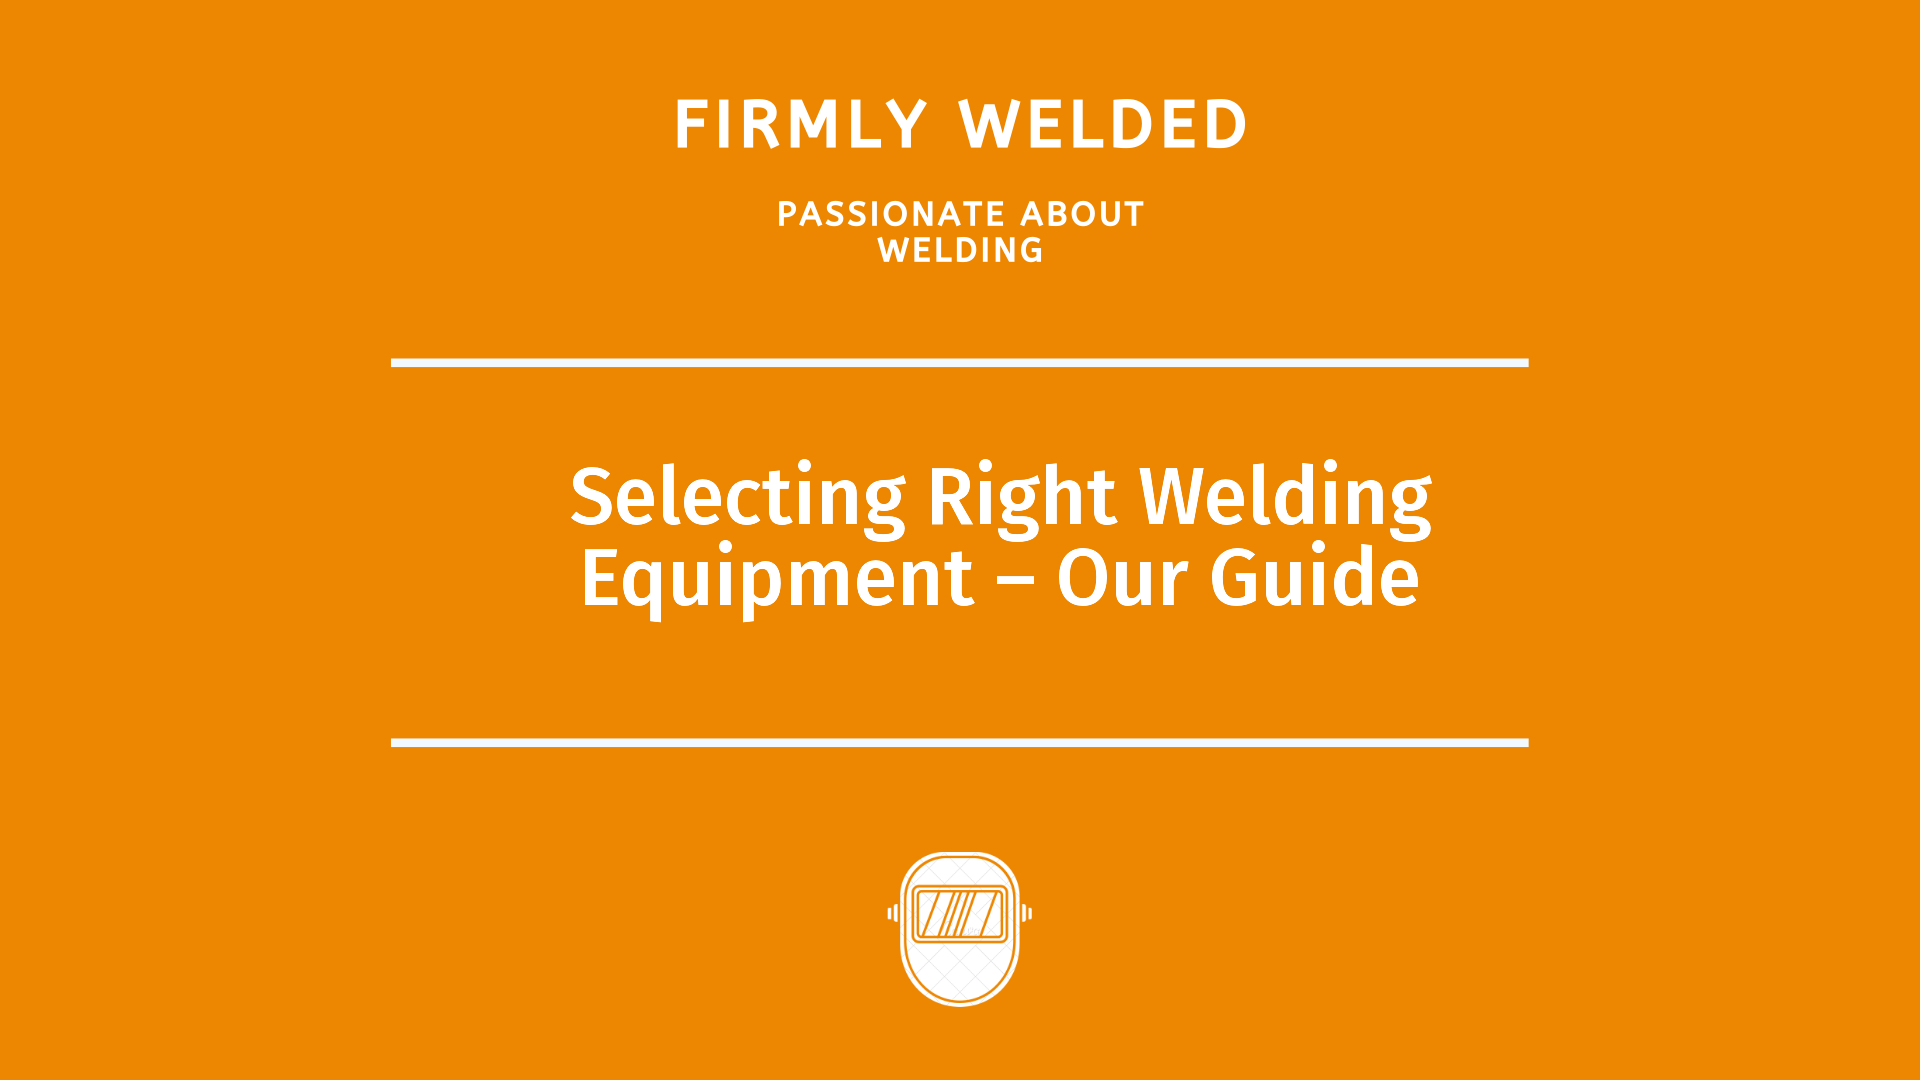 Selecting Right Welding Equipment – Our Guide